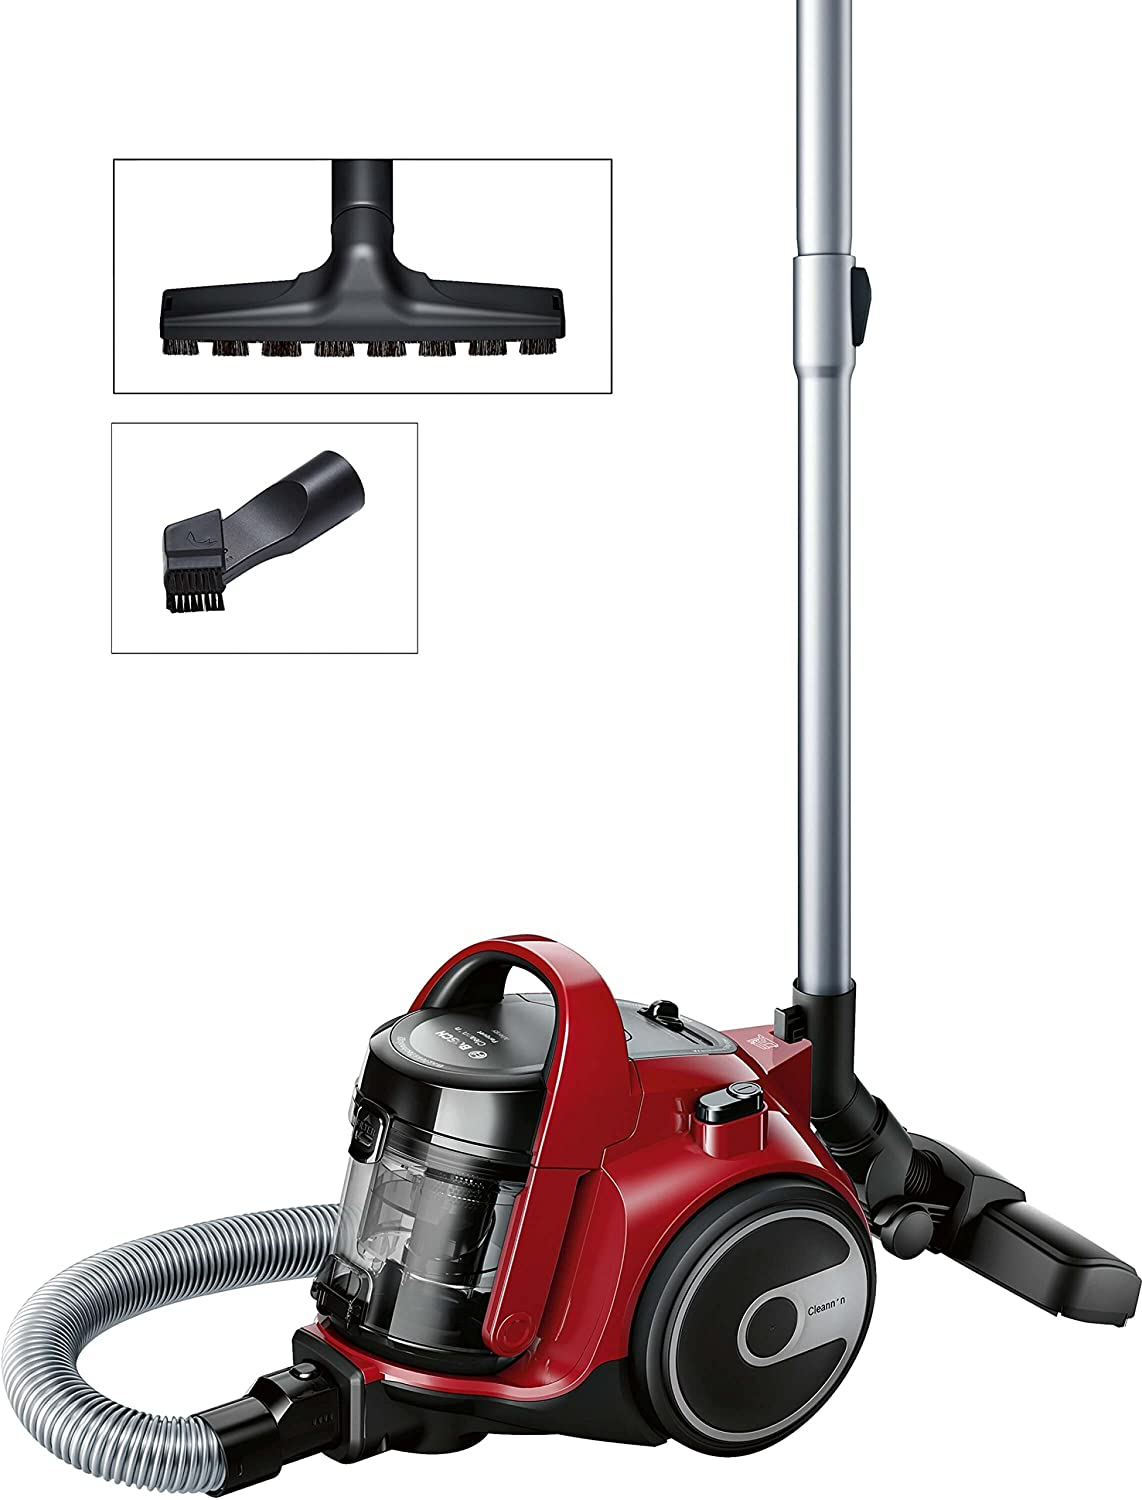 Bosch Clean GS05 Bagless Vacuum Cleaner 700 W - Outlet Product